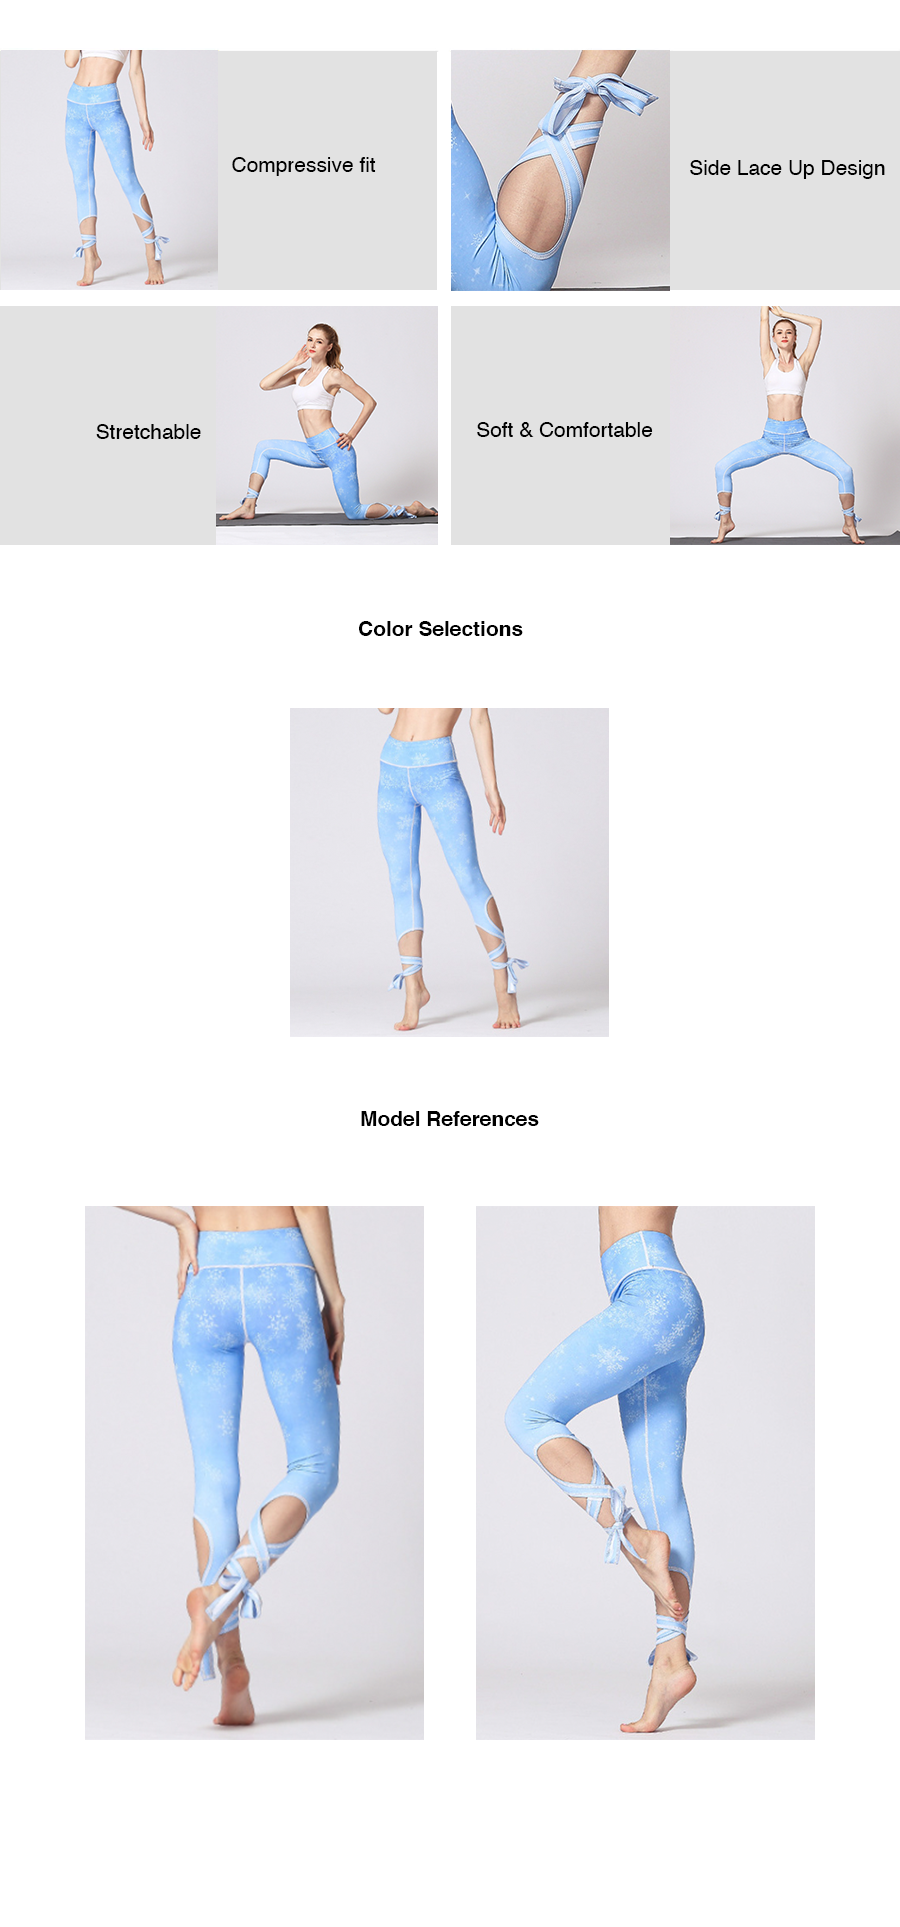 Snow Crystal Lace Up Legging